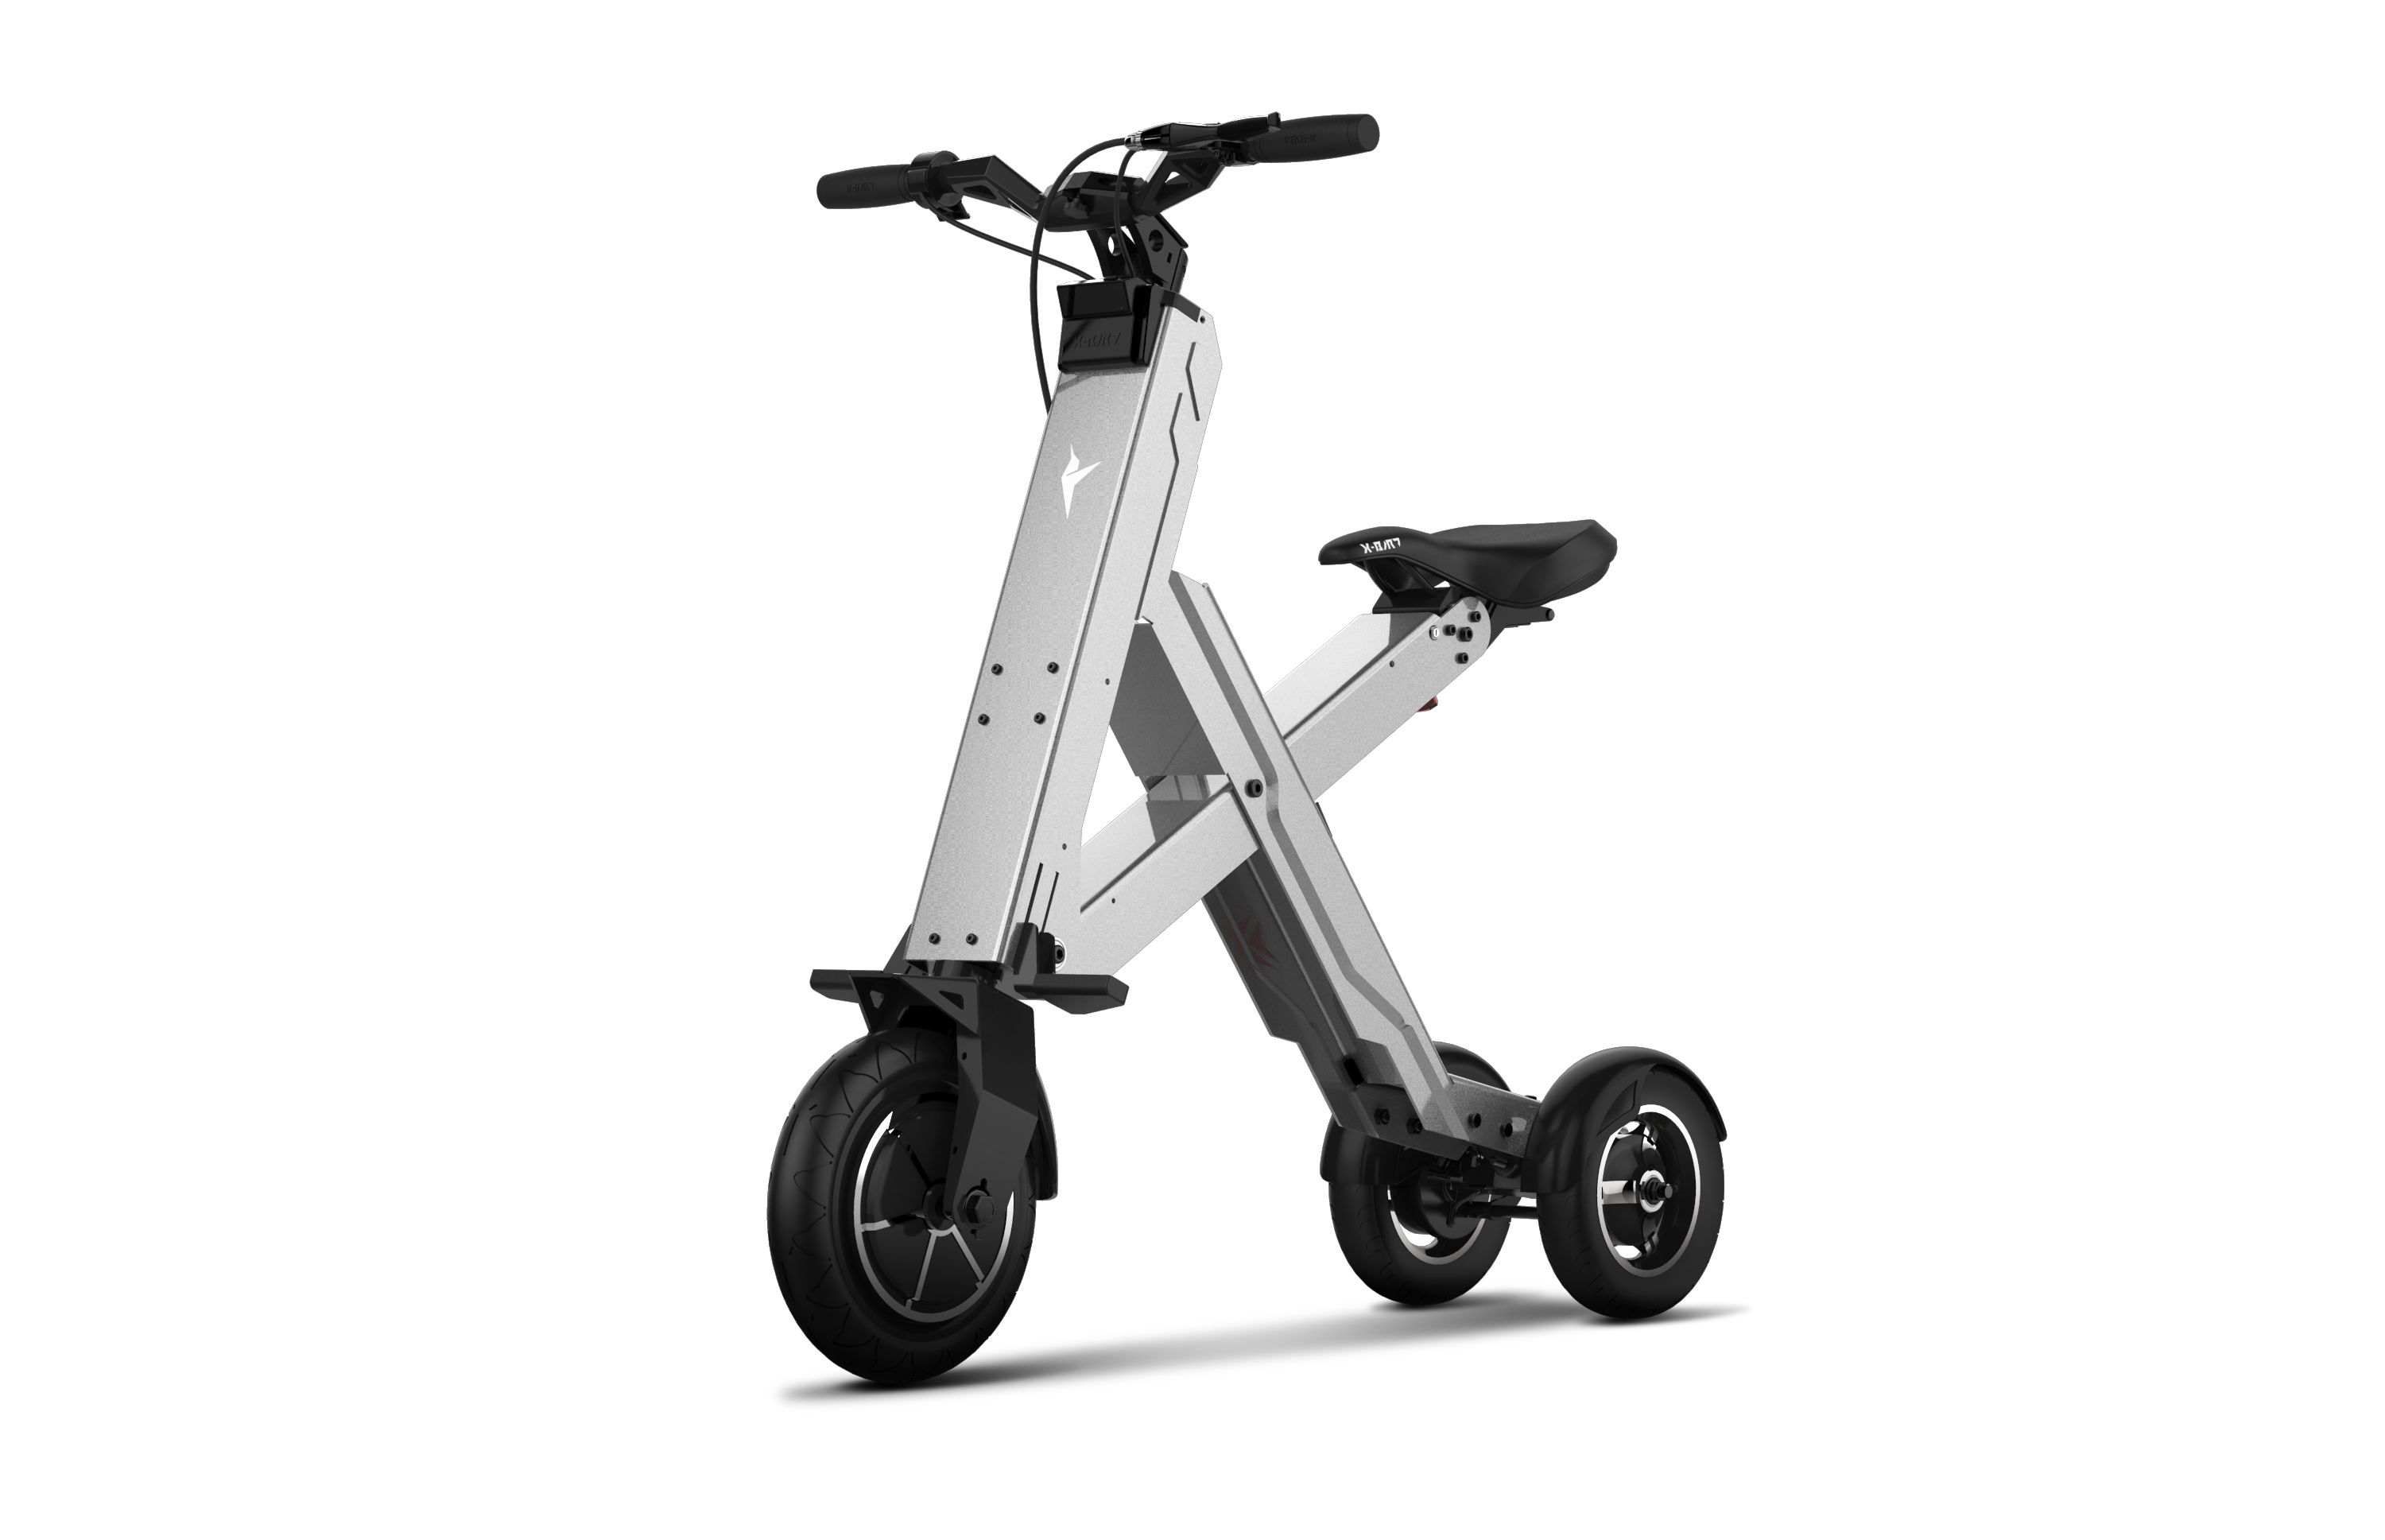 Perfect for the everyday urban rider! #escooter, #scooter